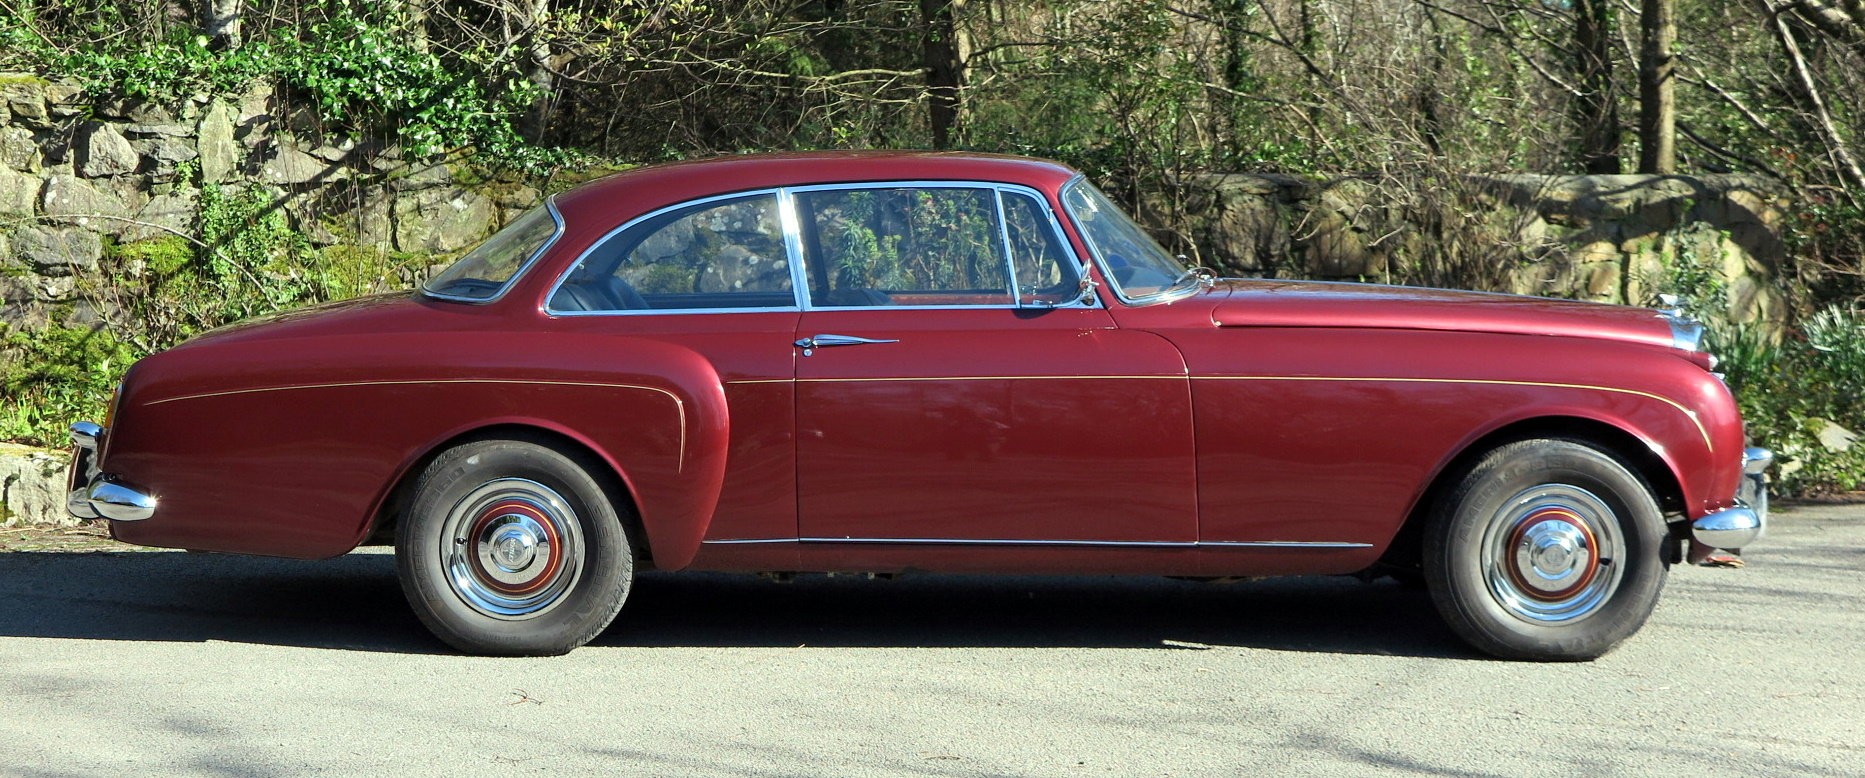 1960 Bentley S2 Continental H.J.Mulliner 2dr Sports Saloon For Sale (picture 2 of 6)